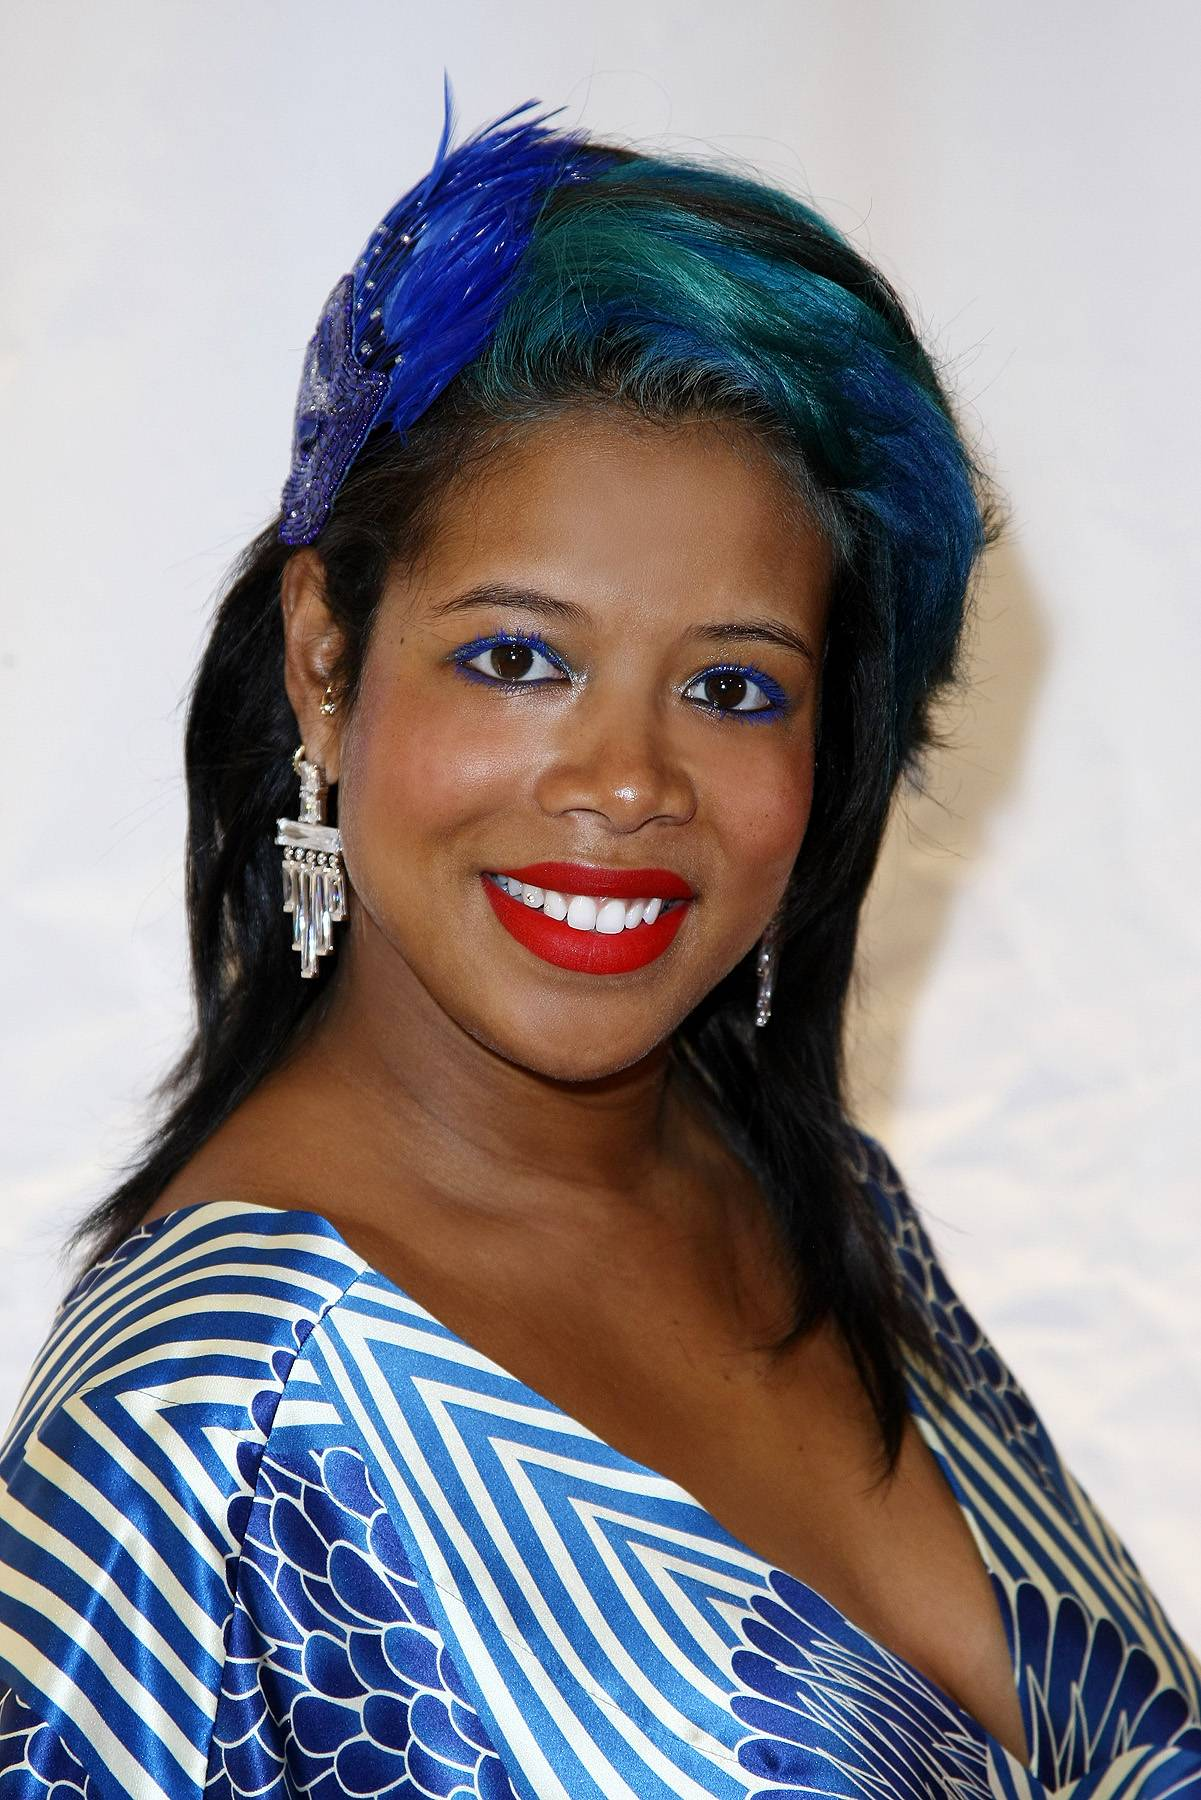 Moody Blue - Blue usually means that you're sad, but Kelis looks extremely happy with her blue and teal tresses.(Photo: Neilson Barnard/Getty Images)